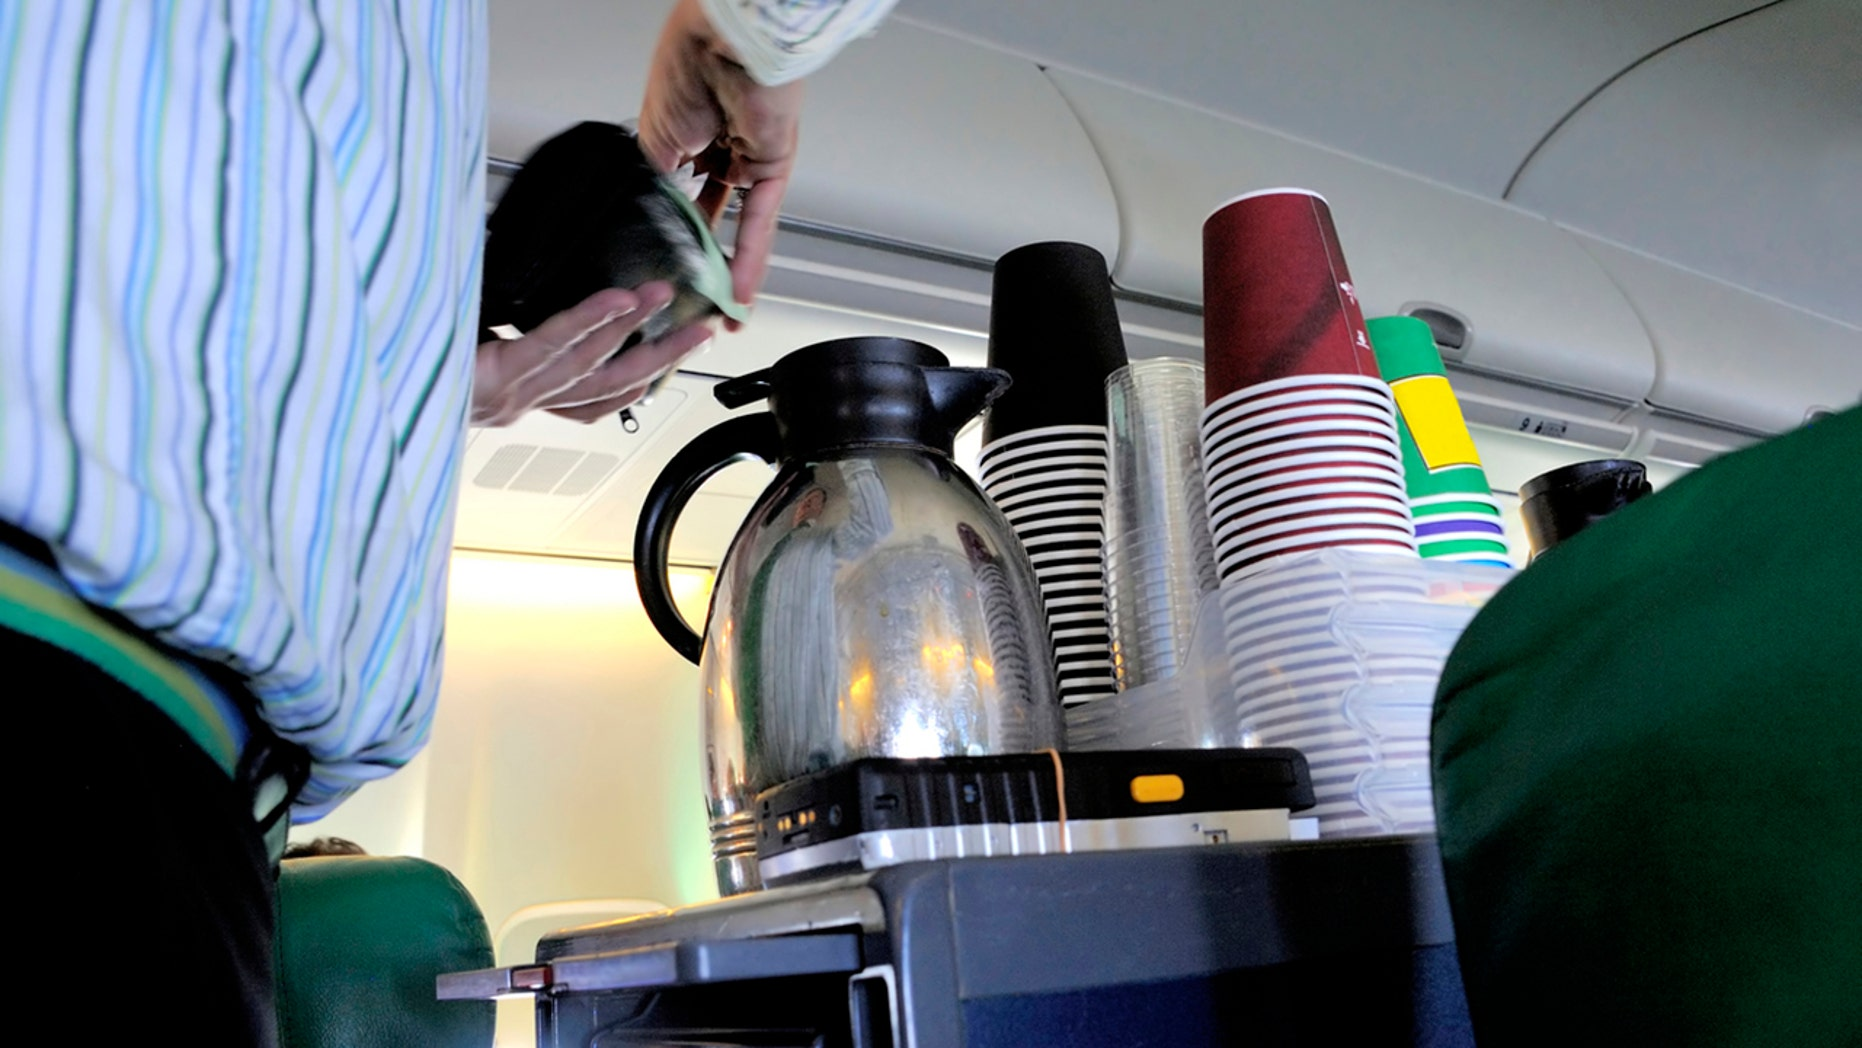 """An unidentified flight attendant for a """"major American airline"""" is cautioning passengers about drinking coffee, alleging that the water used is unsafe."""